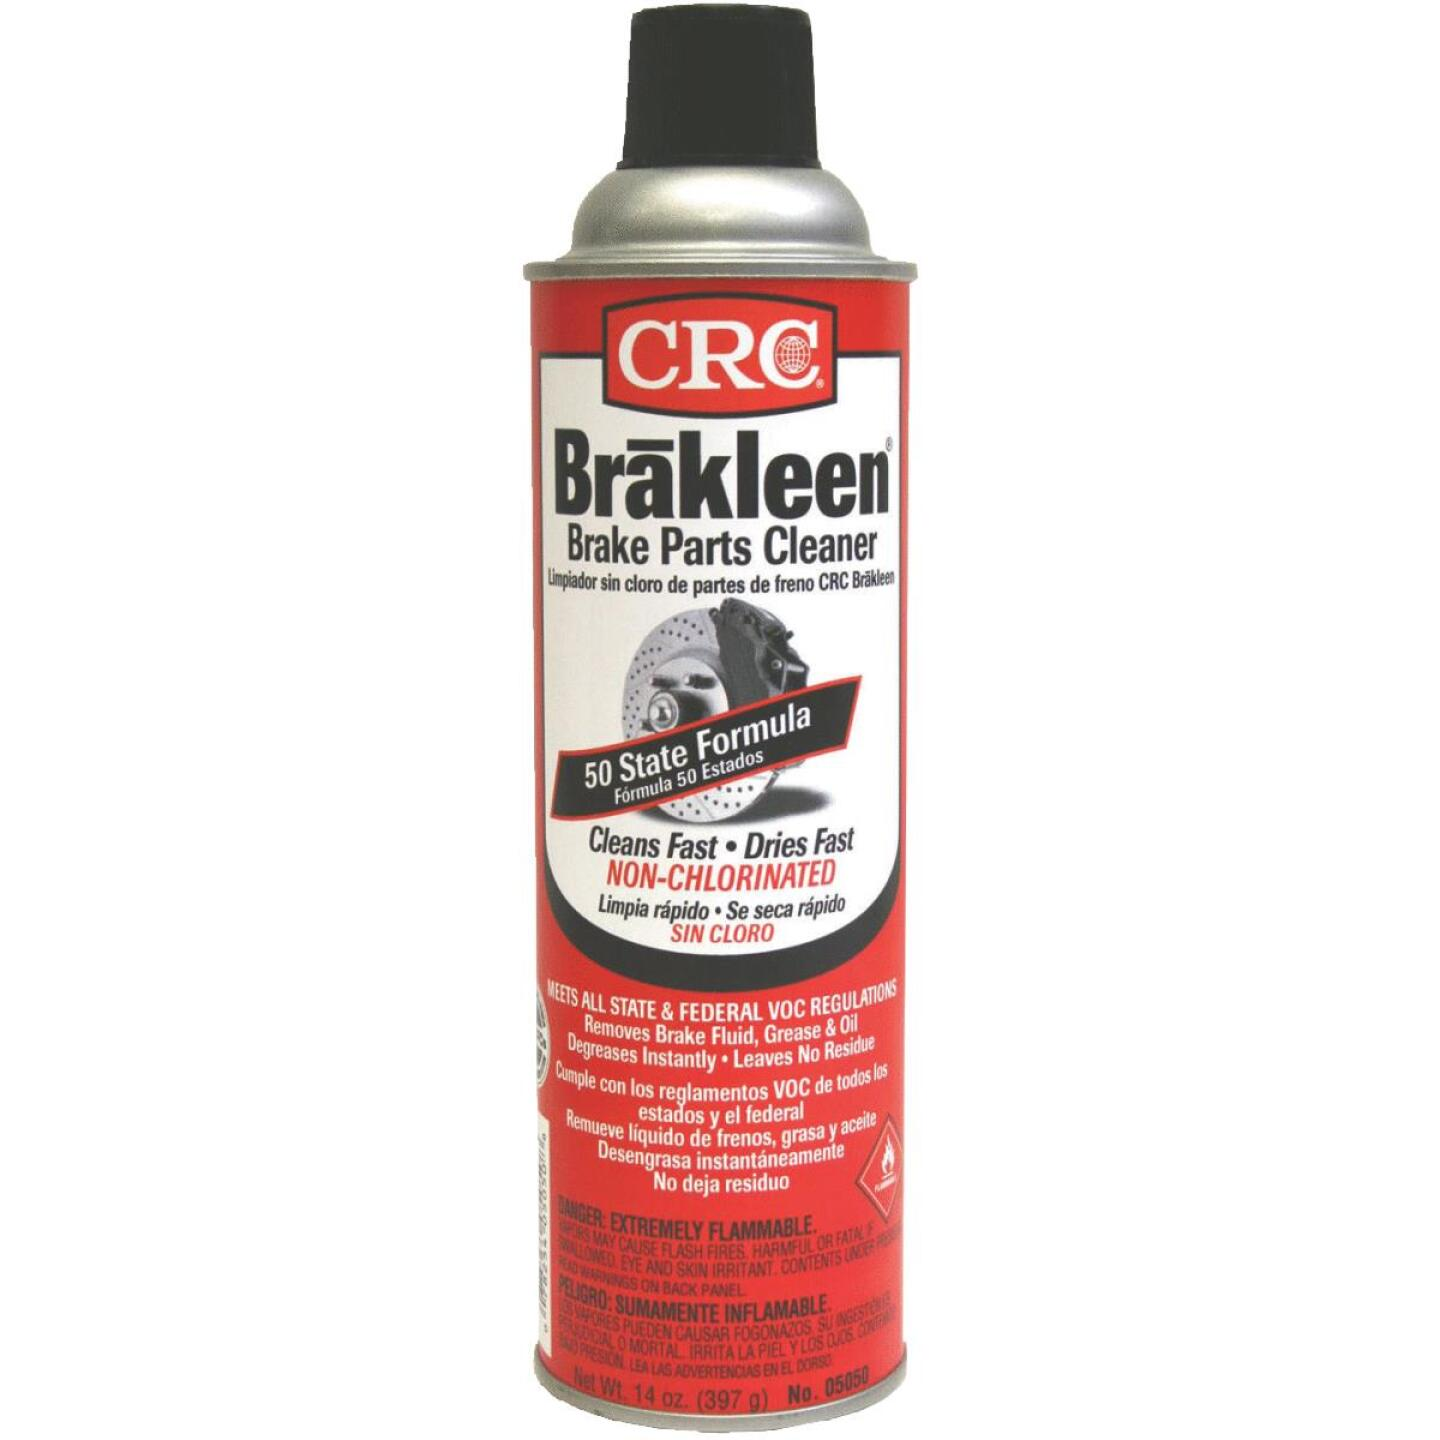 CRC Brakleen 14 Oz. Aerosol Non-Chlorinated Brake Parts Cleaner Image 1